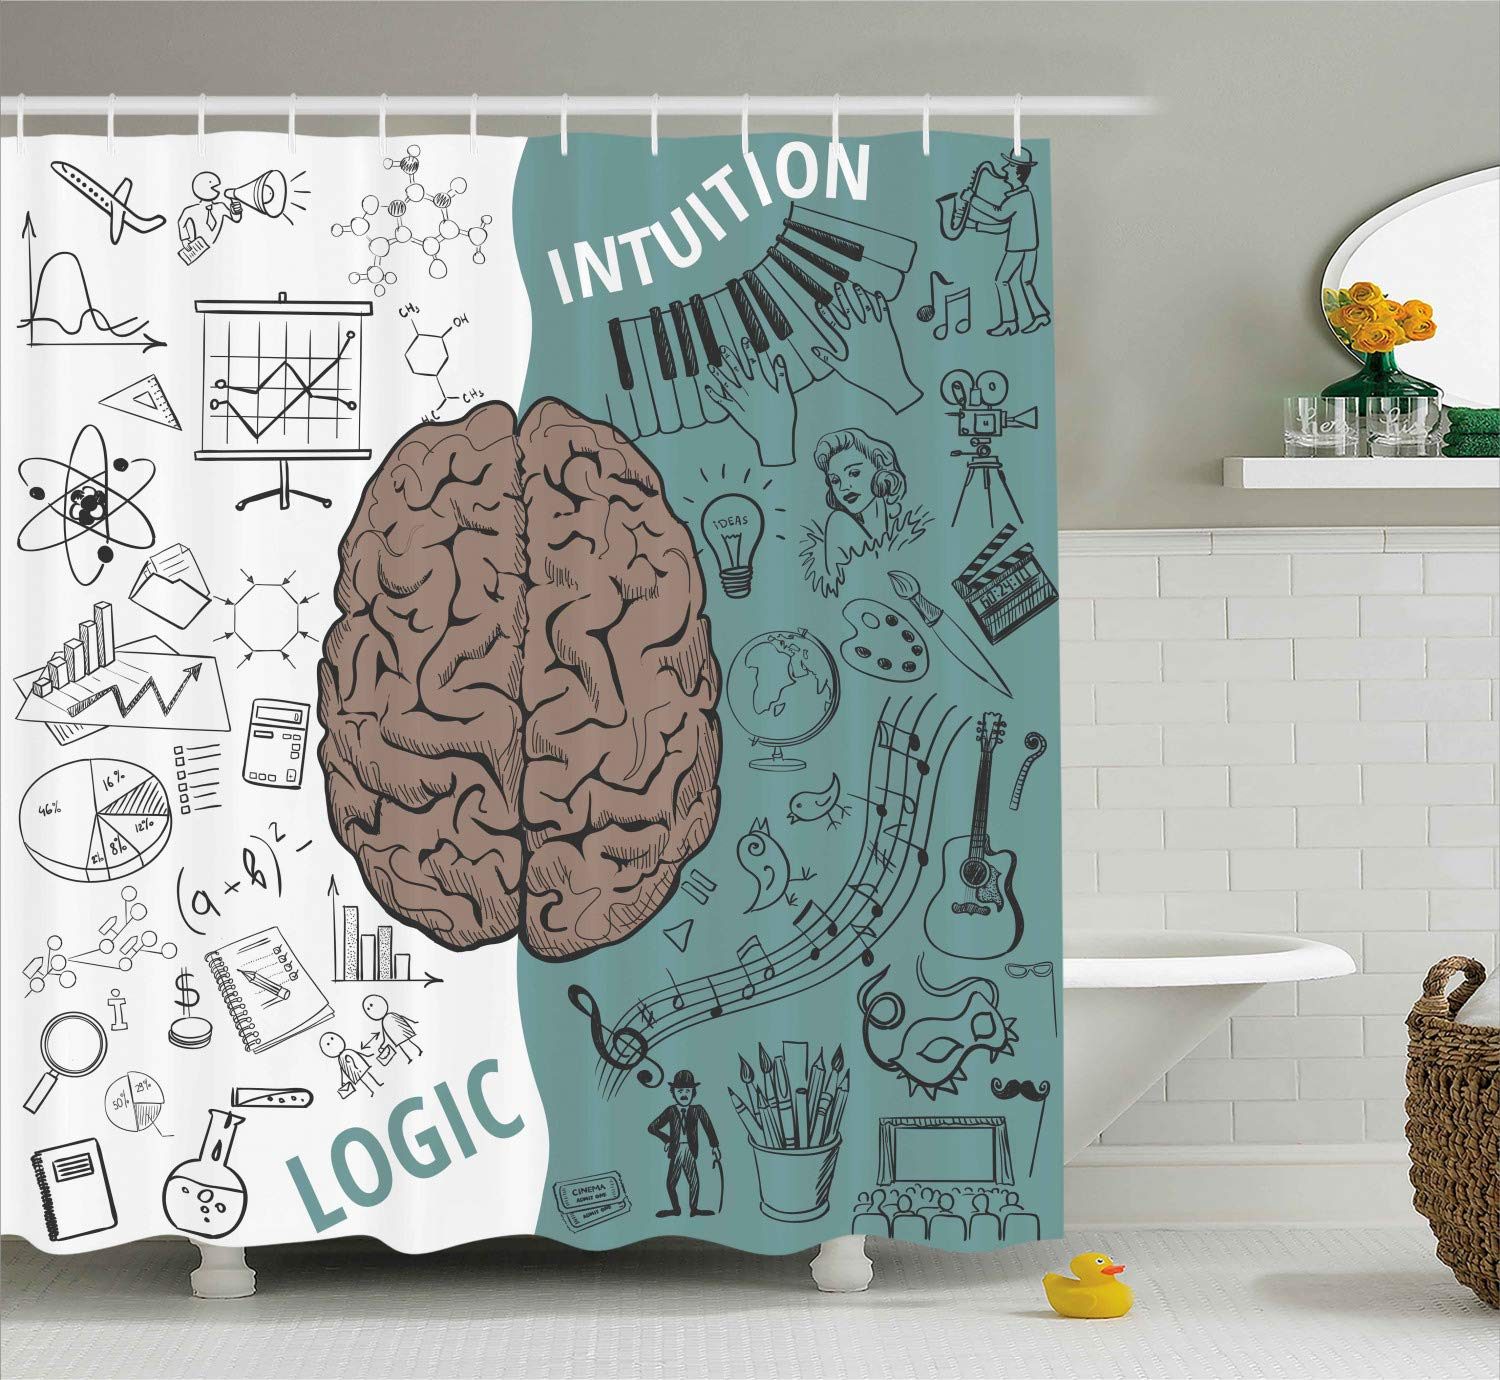 Ambesonne Modern Decor Shower Curtain, Brain Image with Left and Right Side Music Logic Art Side Science Print, Fabric Bathroom Decor Set with Hooks, 75 Inches Long, White Teal Umber